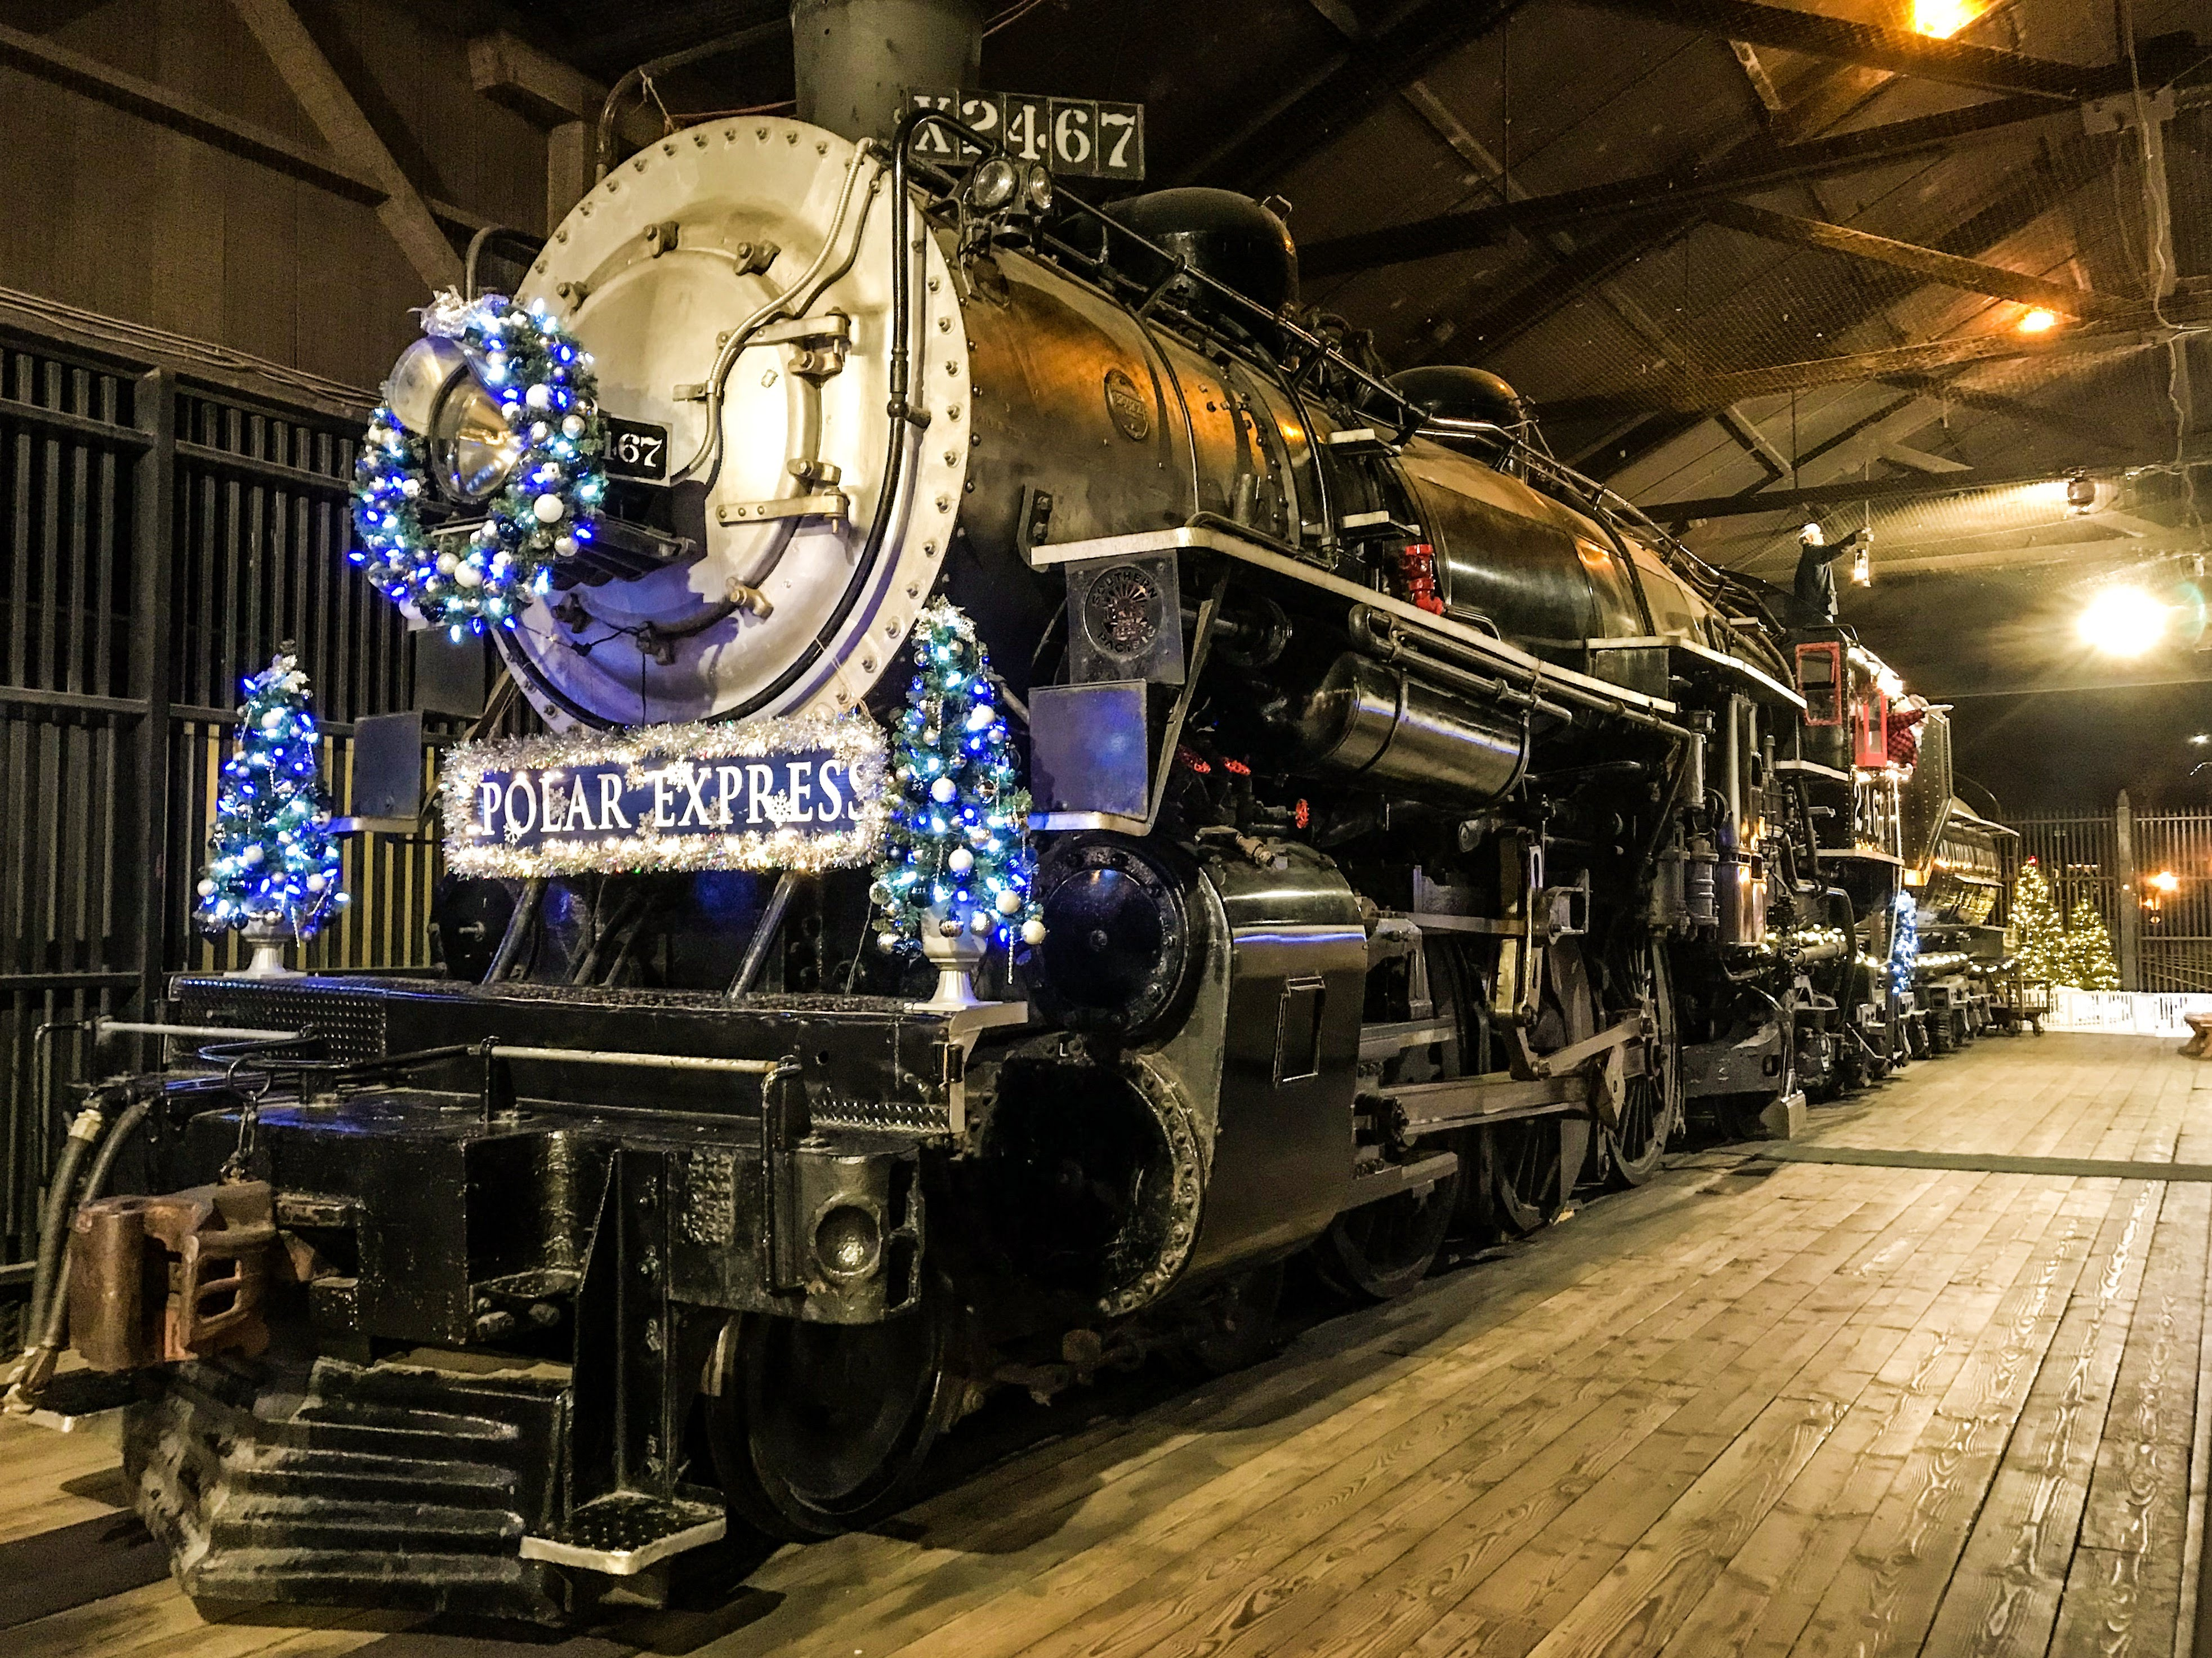 Polar Express Train Ride In Sacramento Review What To Expect Henry And Andrew S Guide